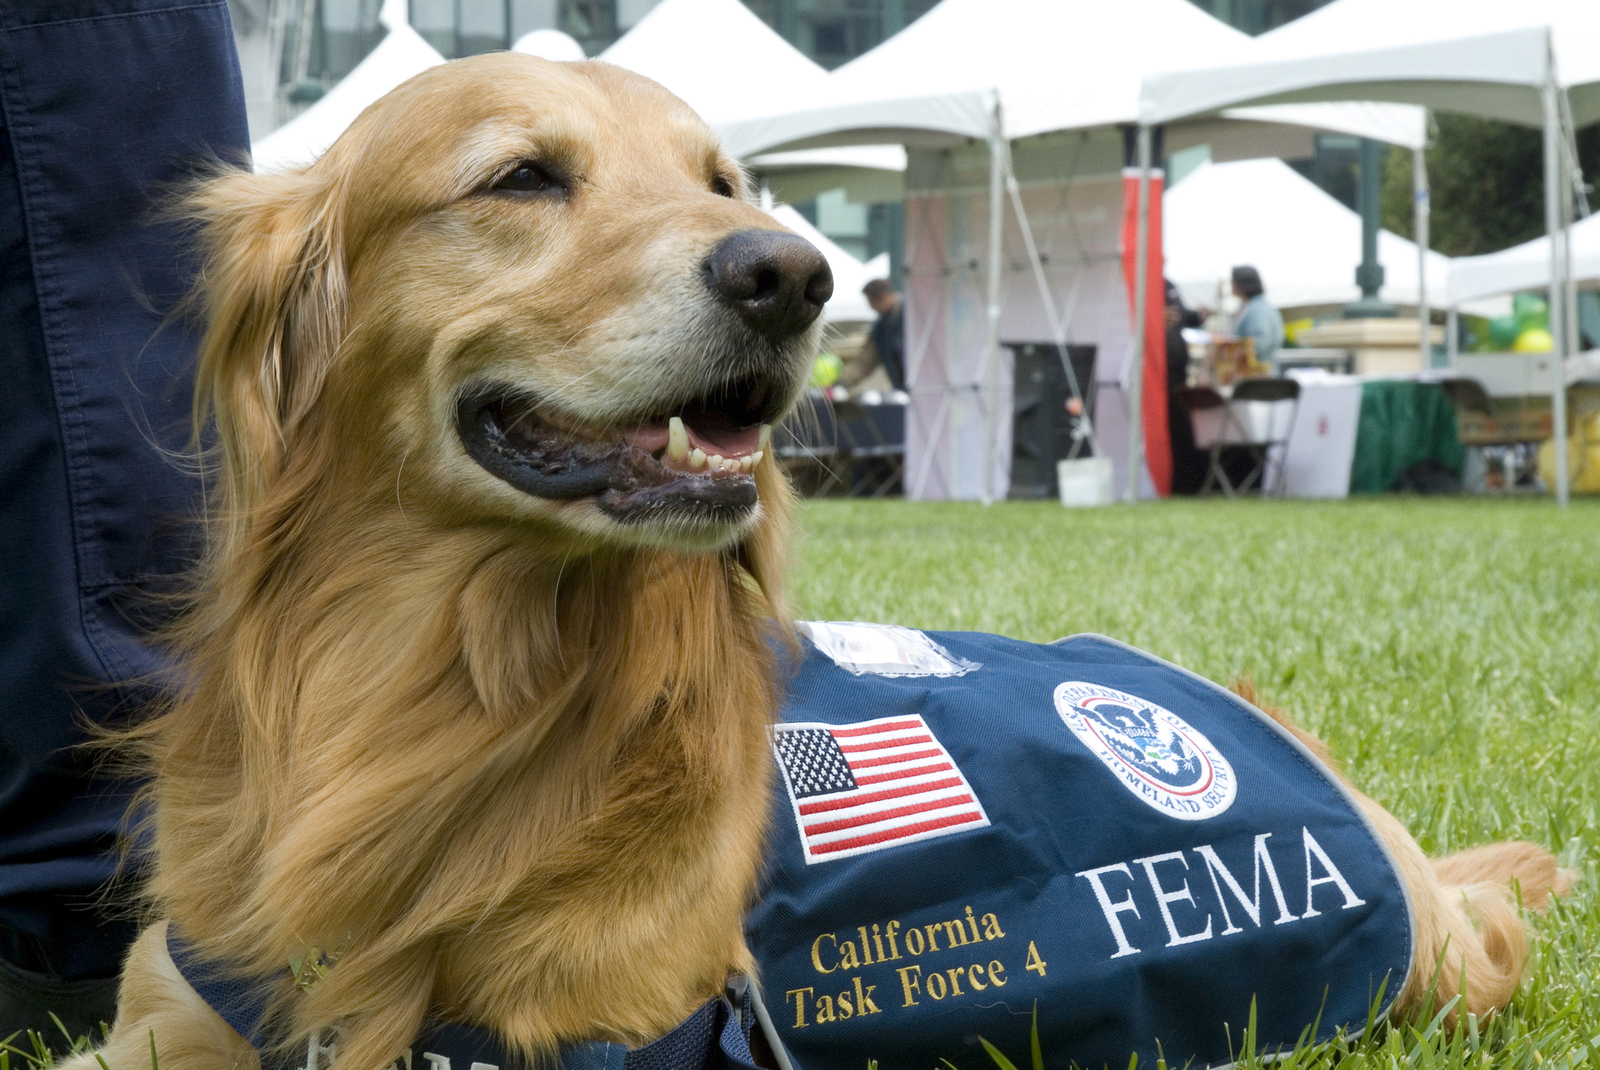 """Oakland, CA, June 25 2008 -- Four year old golden retriever and current member of the California Urban Search and Rescue Team 4 (USAR) """"Sandy"""" is present at the FEMA Safety Preparedness Expo tent. The expo had themes of safety and preparedness highlighted with search and rescue capabilities, recovery tools, and mitigation procedures to assist in preparing for and responding to disasters. Adam DuBrowa/ FEMA."""